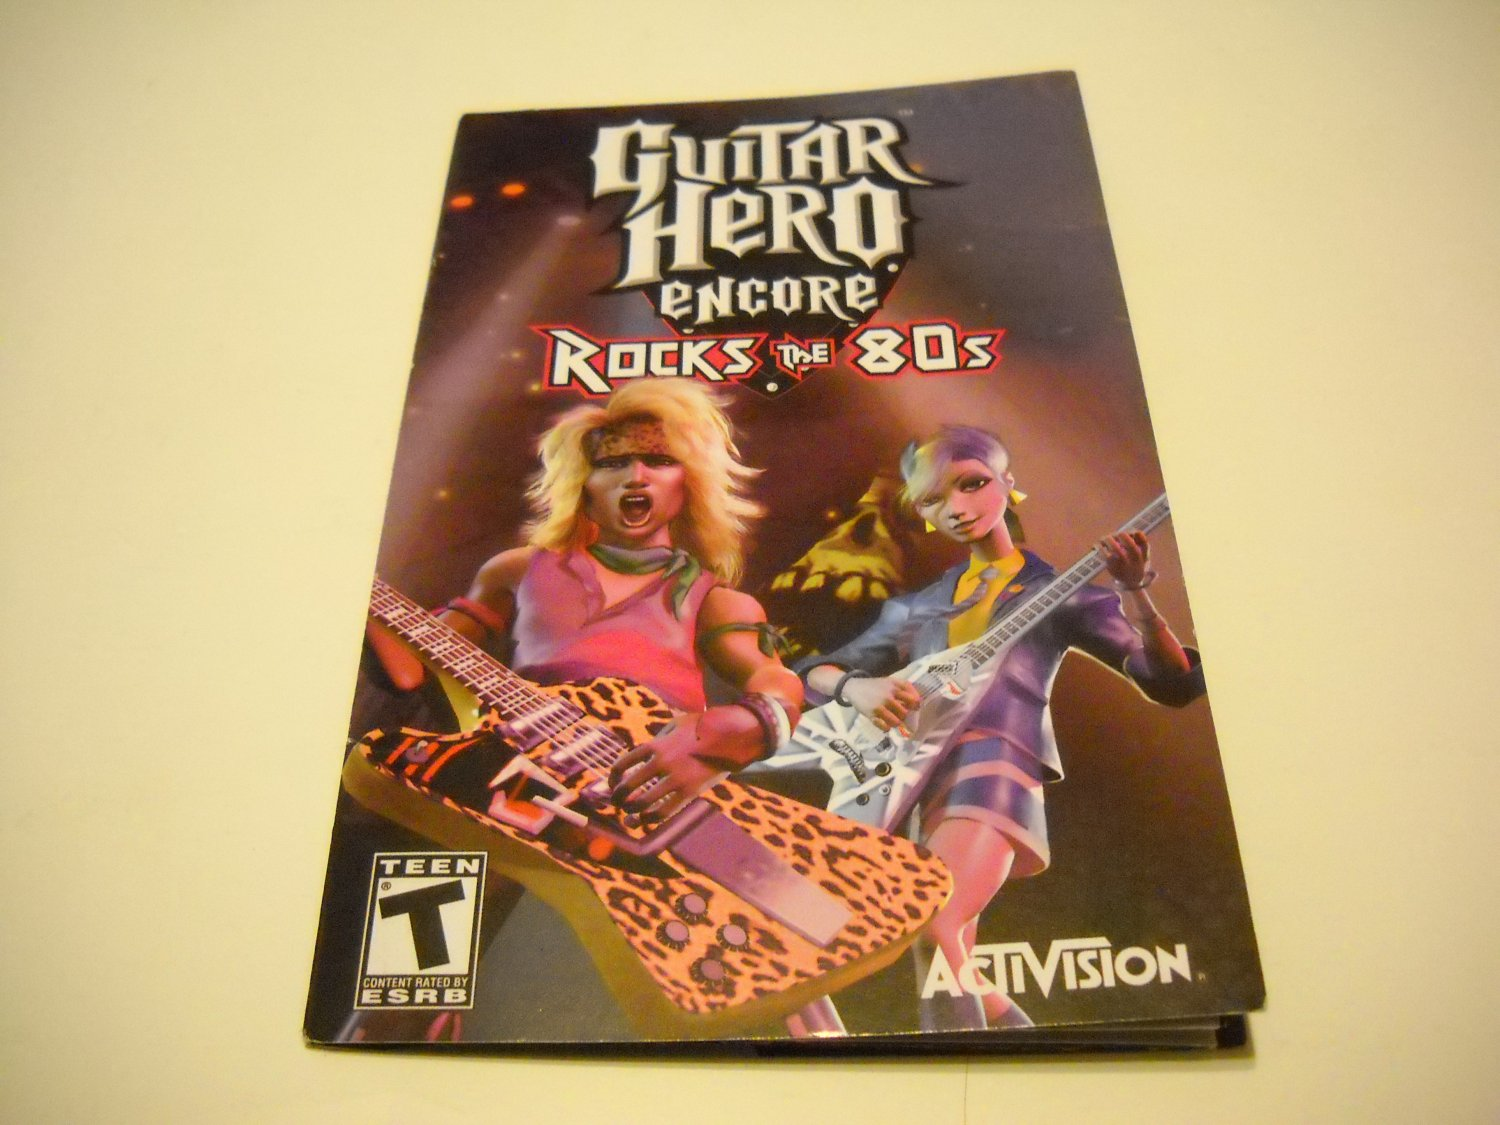 Manual ONLY ~  for Guitar Hero Encore Rocks the 80's   Ps2